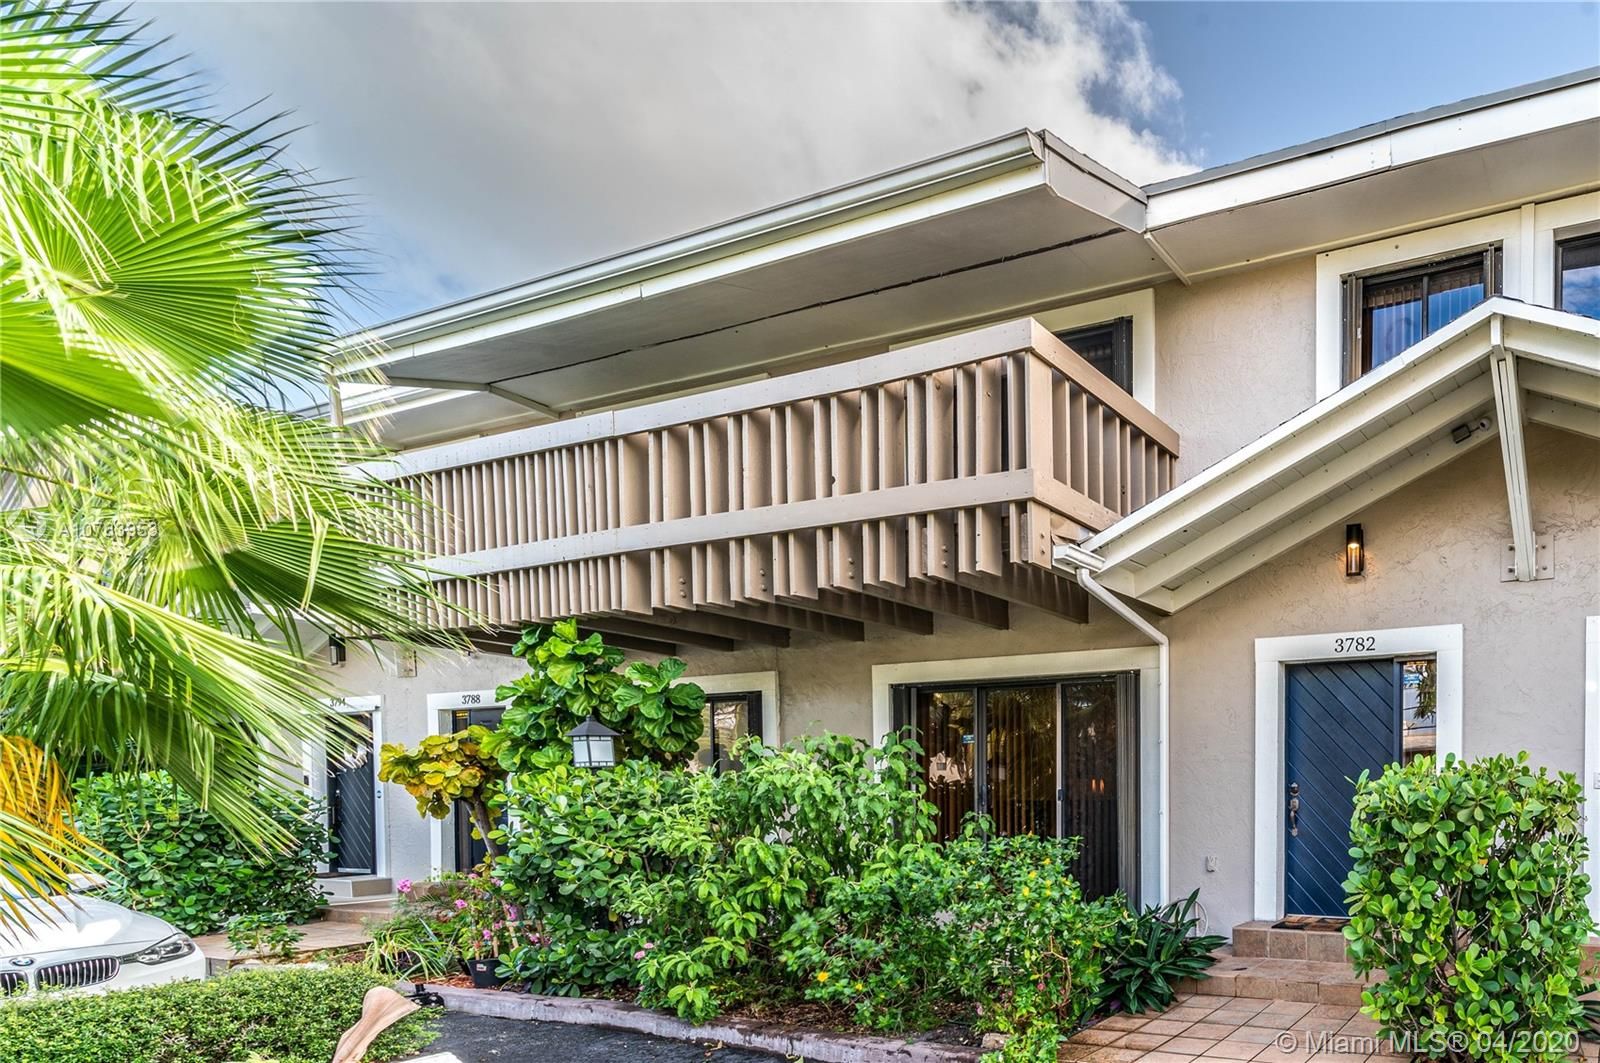 Beautiful and spacious waterfront townhome with 35 ft dock directly behind the property and almost 2,000 sq ft of living space. Access the Intracoastal and the ocean with no bridges, located only minutes away from the intracoastal waterway and 3 miles North of Haulover Inlet in N. Miami.The Tides Towhhomes is a secluded community -only 17 townhomes. It offers privacy with no buildings on the back of the property, only canal view.  This home was renovated, has large porcelain tile floors downstairs and open kitchen. The bedrooms are pretty large, the master bedroom with balcony overlooks the water and the master bath is huge with a shower / jacuzzi tub. In addition, there is a Sauna Room on the second floor. The deck-sitting area has Dura Dock instead of wood. Very affordable HOA.